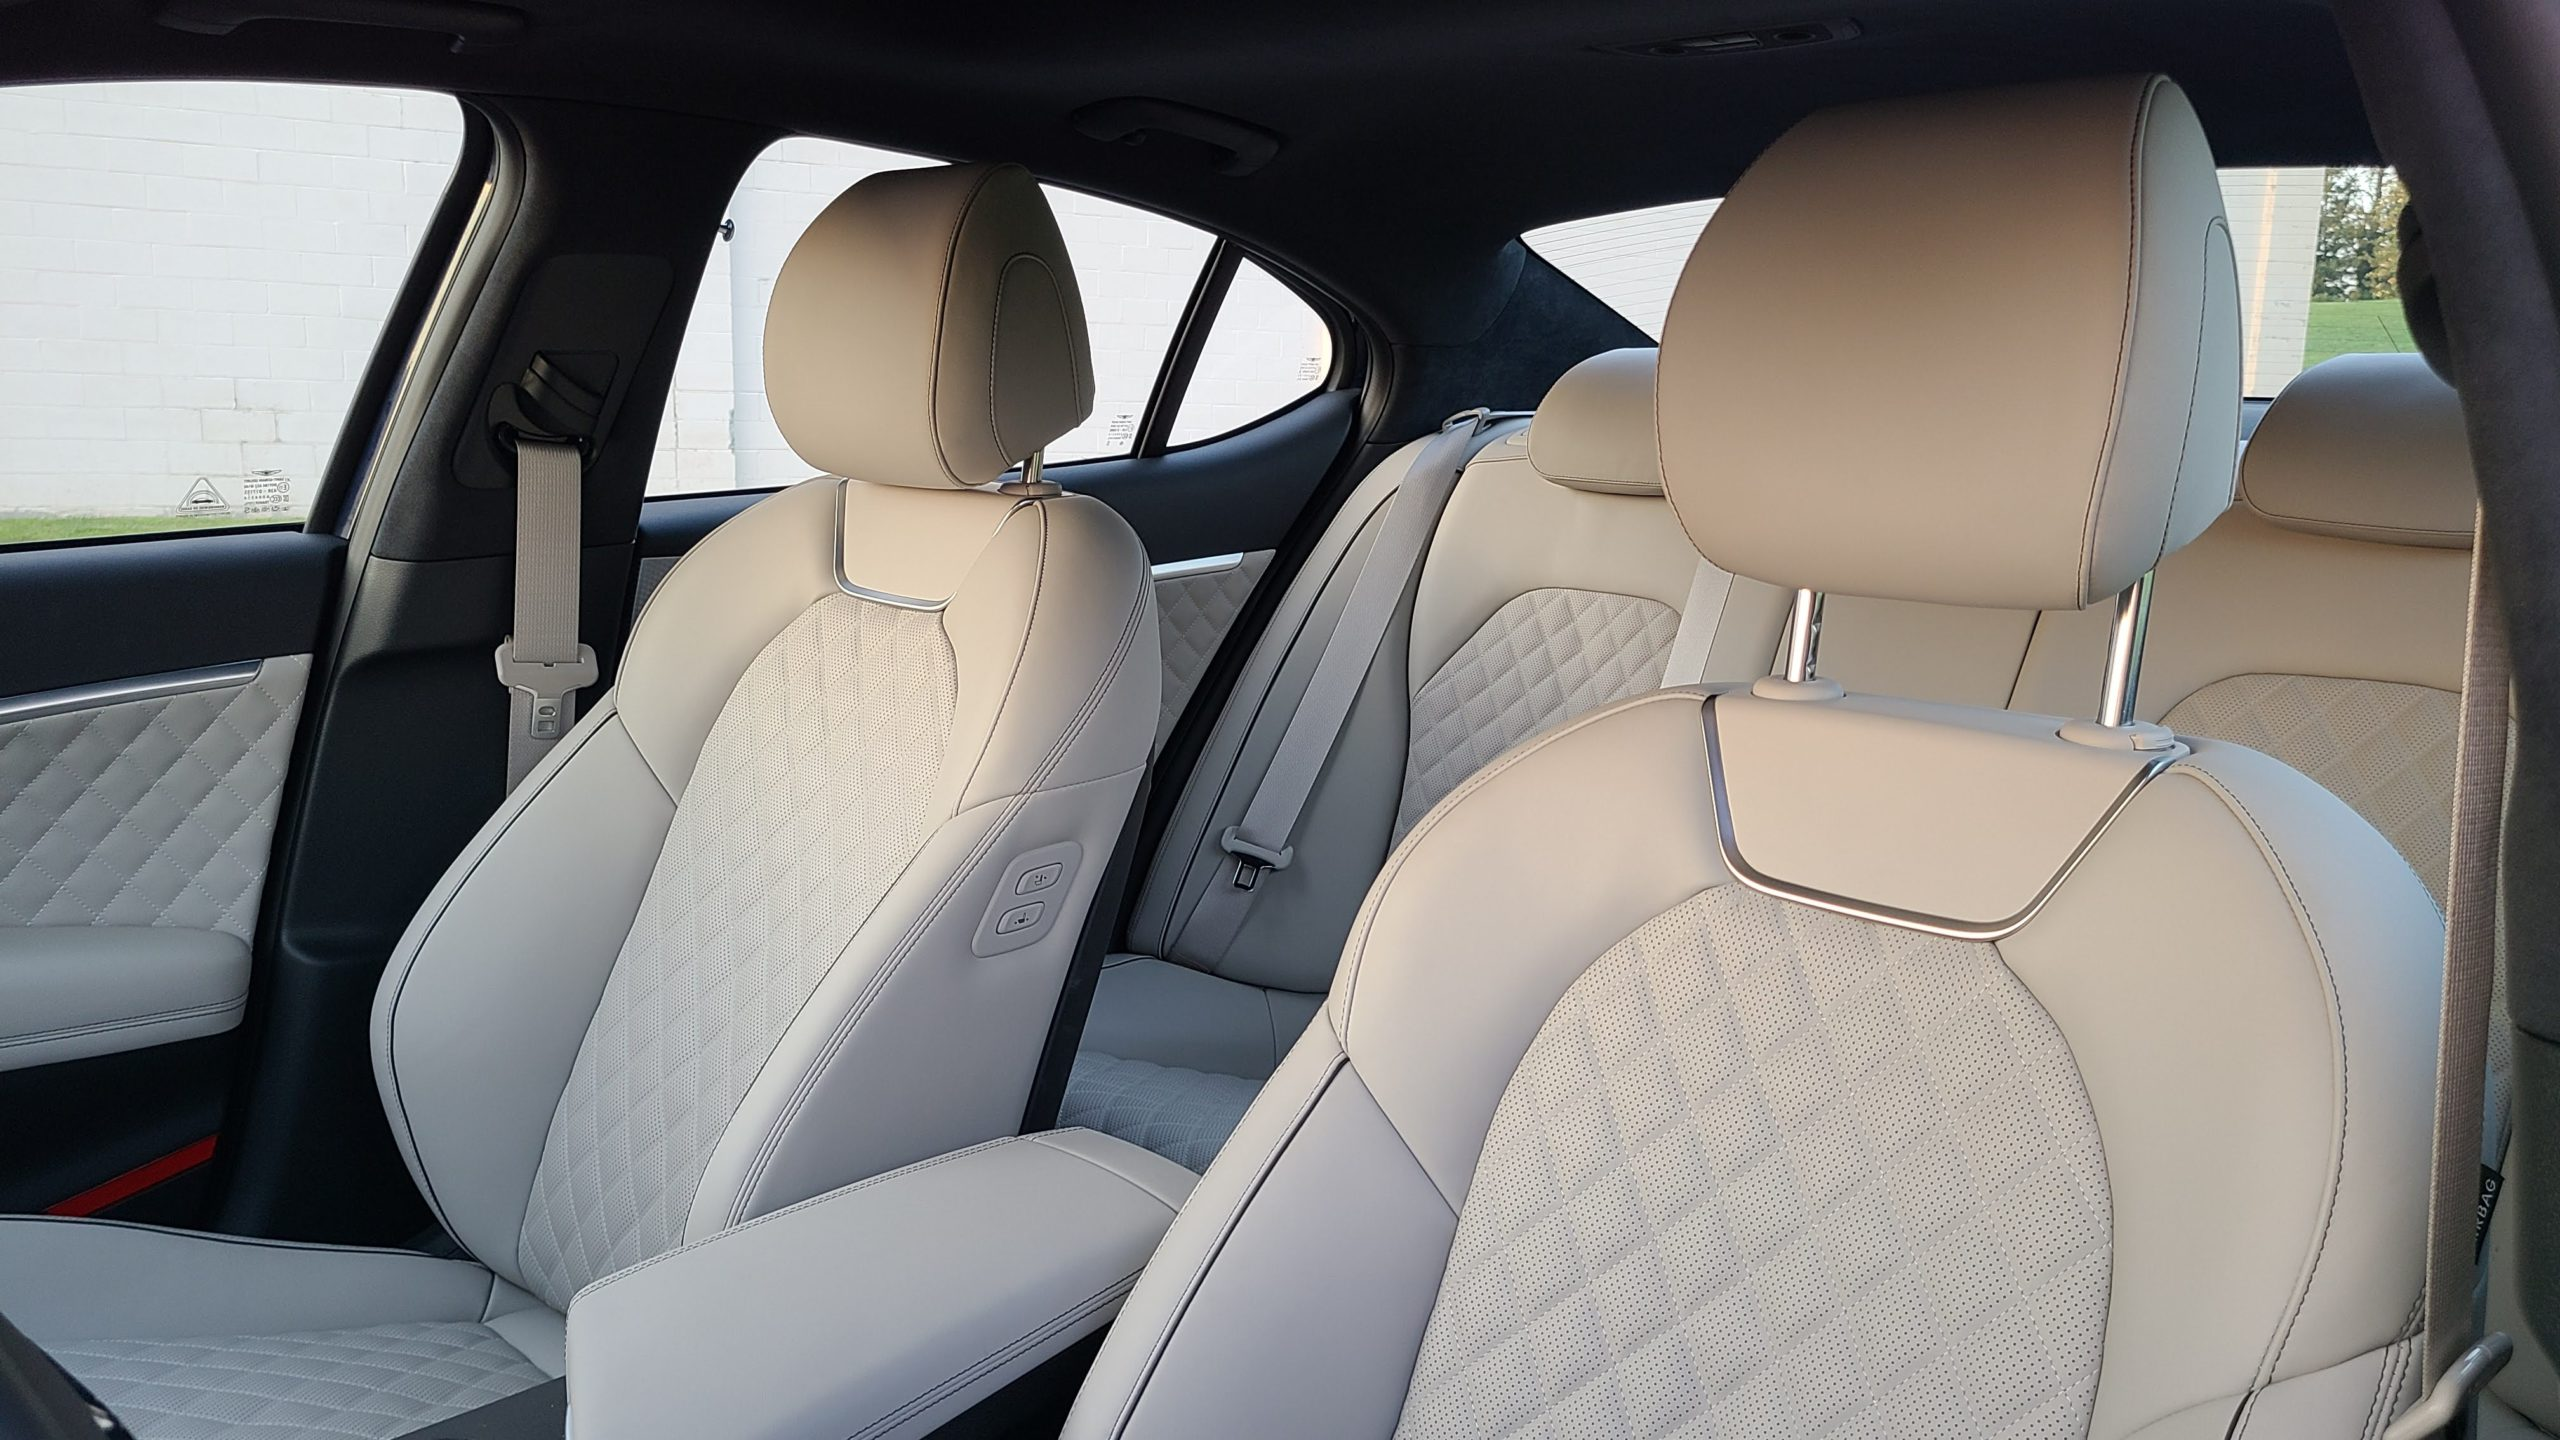 Genesis G70 front and rear seats